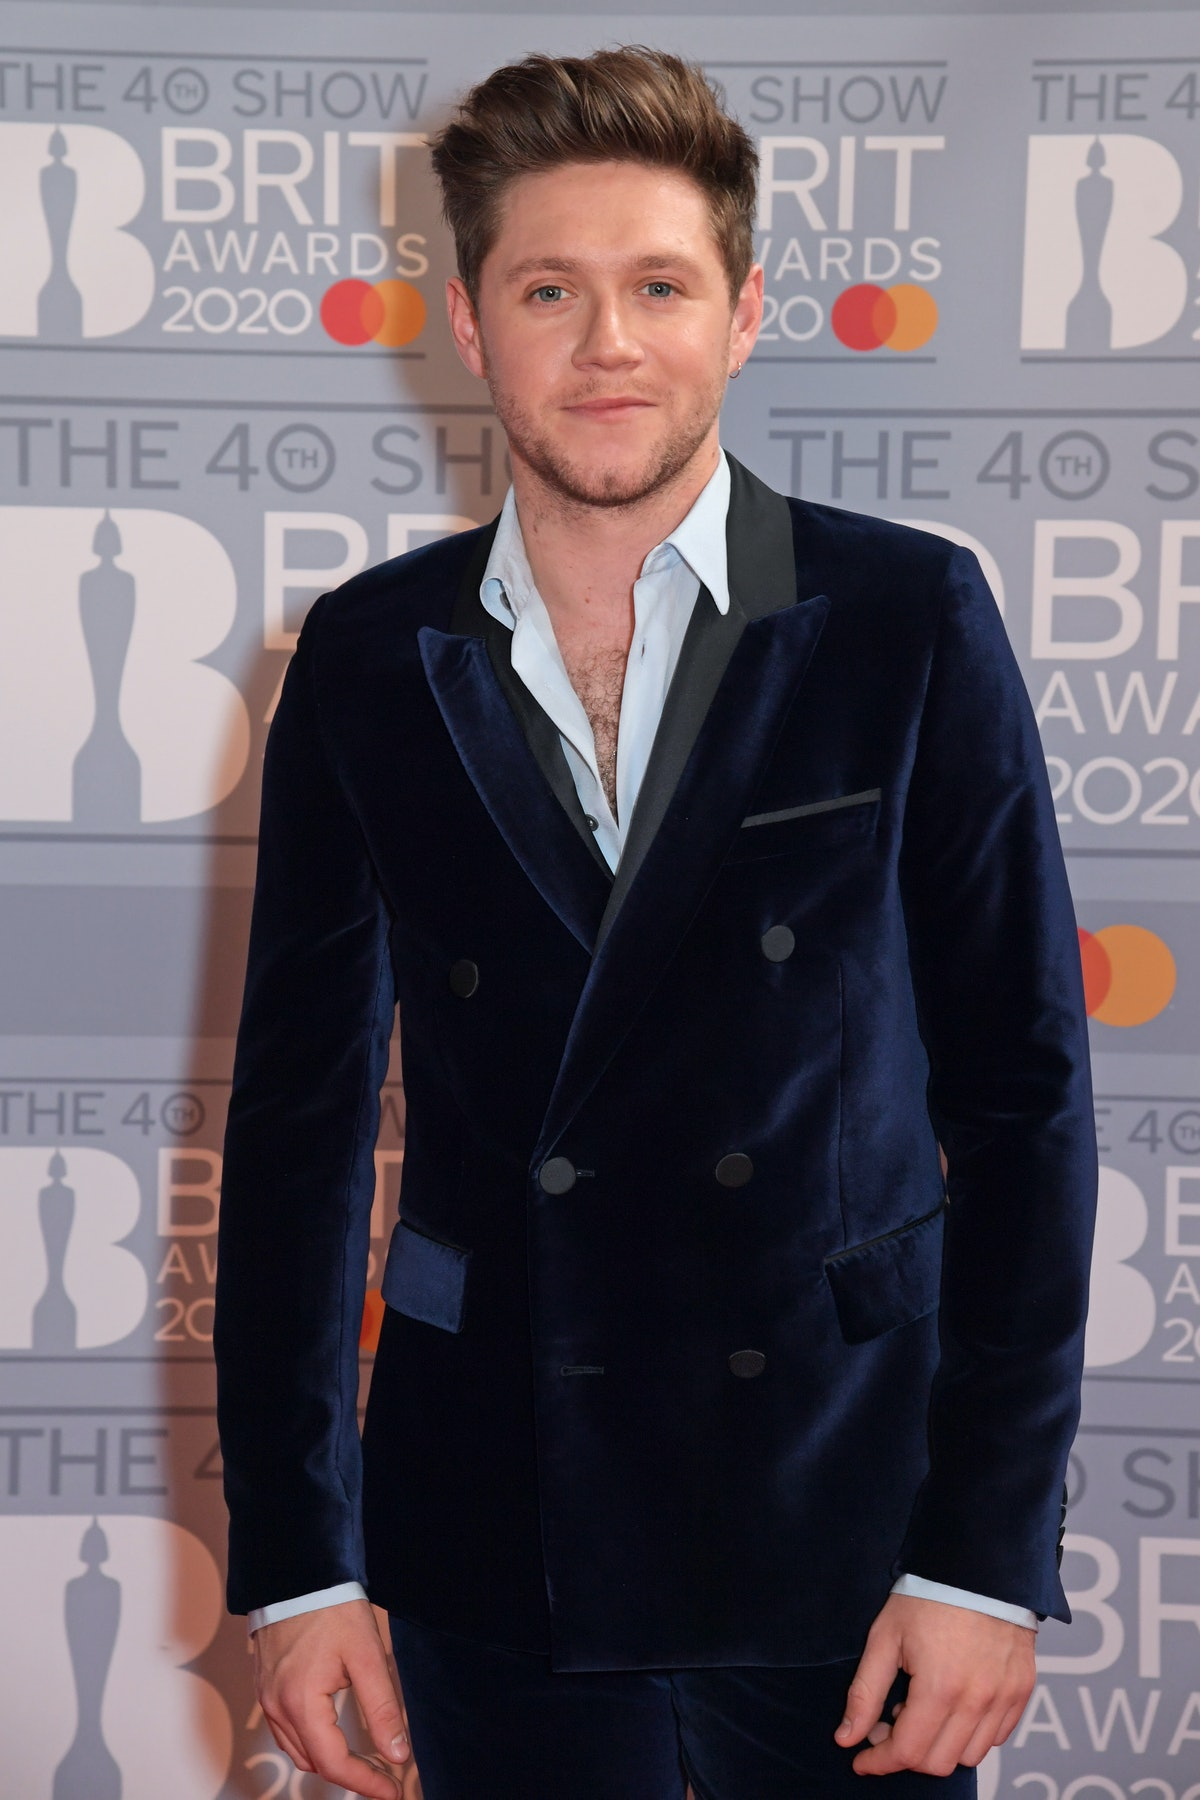 Niall Horan at the 2020 Brit Awards, where he caught up with fellow One Direction member Harry Styles. Niall Horan's story about meeting up with Harry Styles will make fans smile.